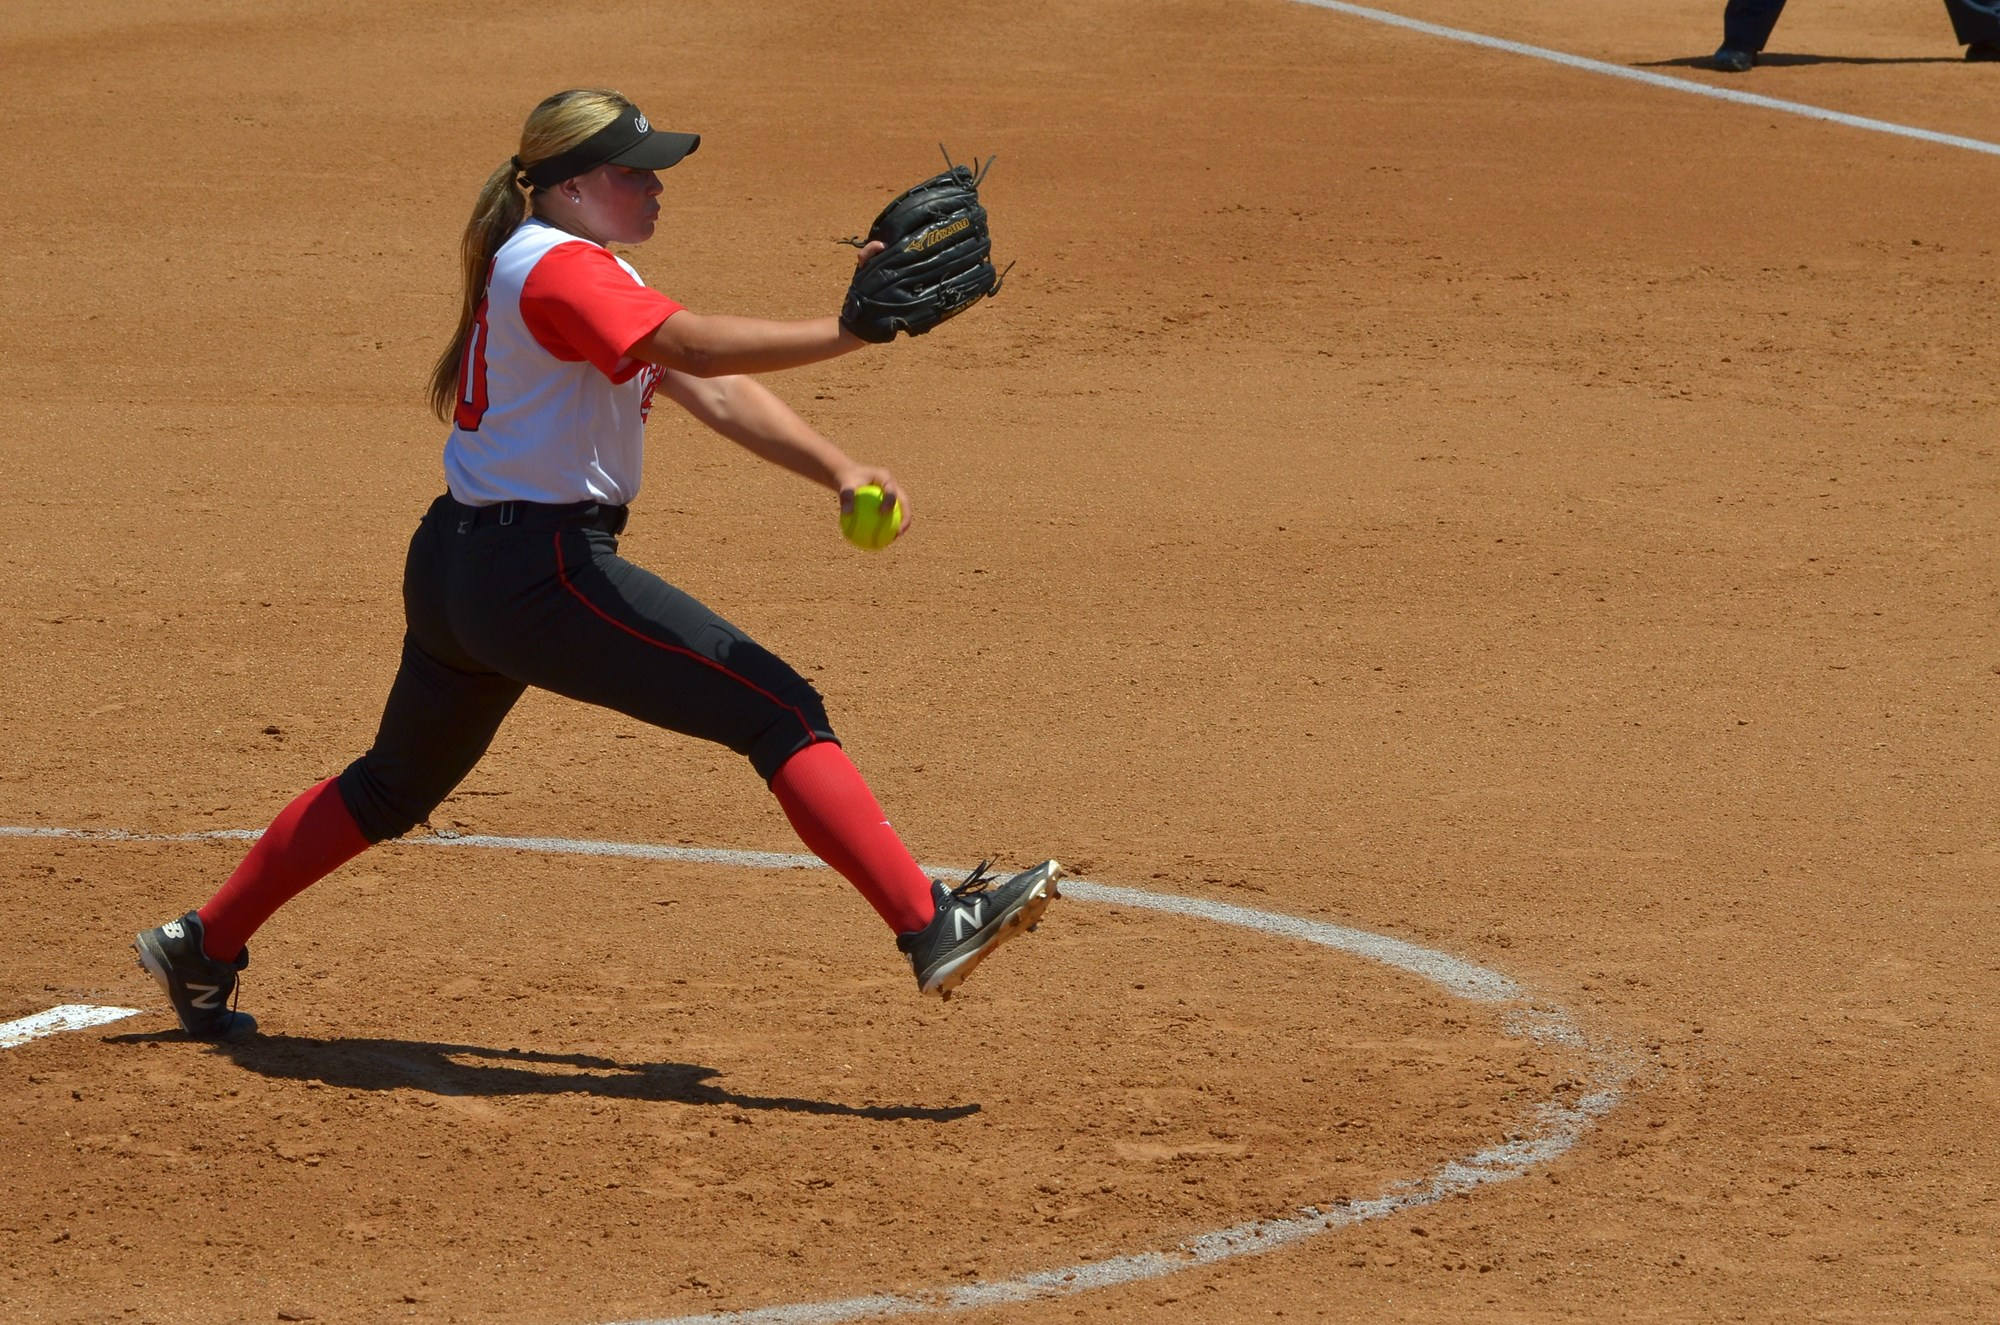 Alexis Lucyshyn went four innings and earned the win